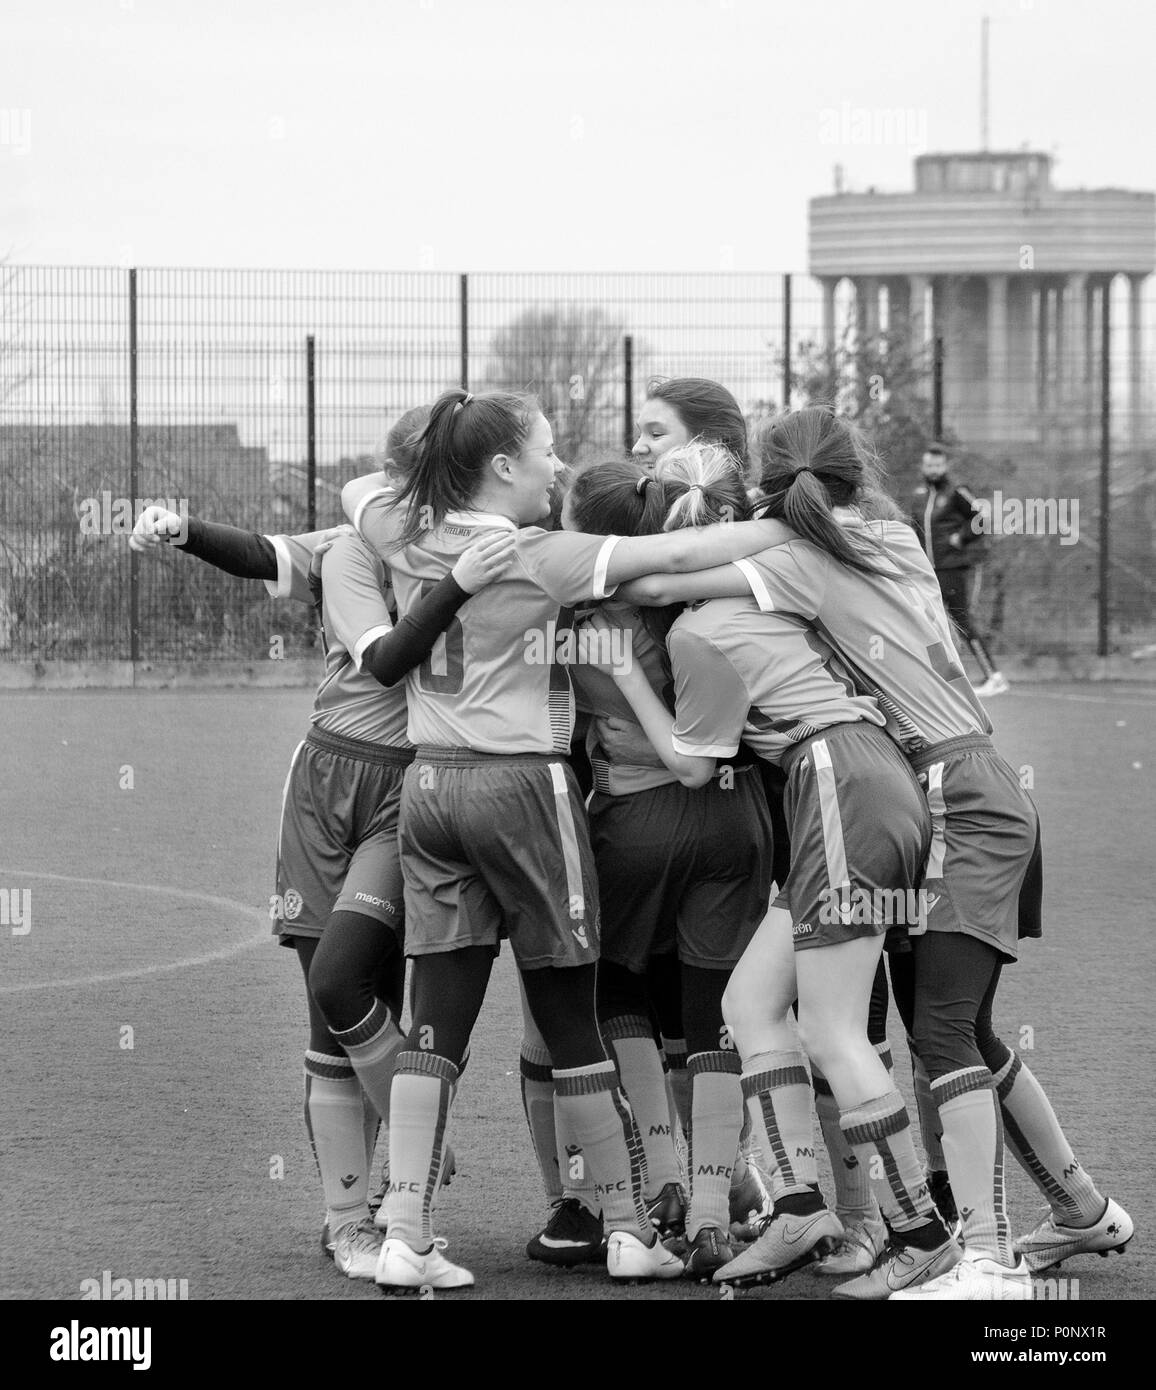 MOTHERWELL, SCOTLAND - MARCH 14th 2015: A girls youth football team surprises a win with a huddle. Stock Photo